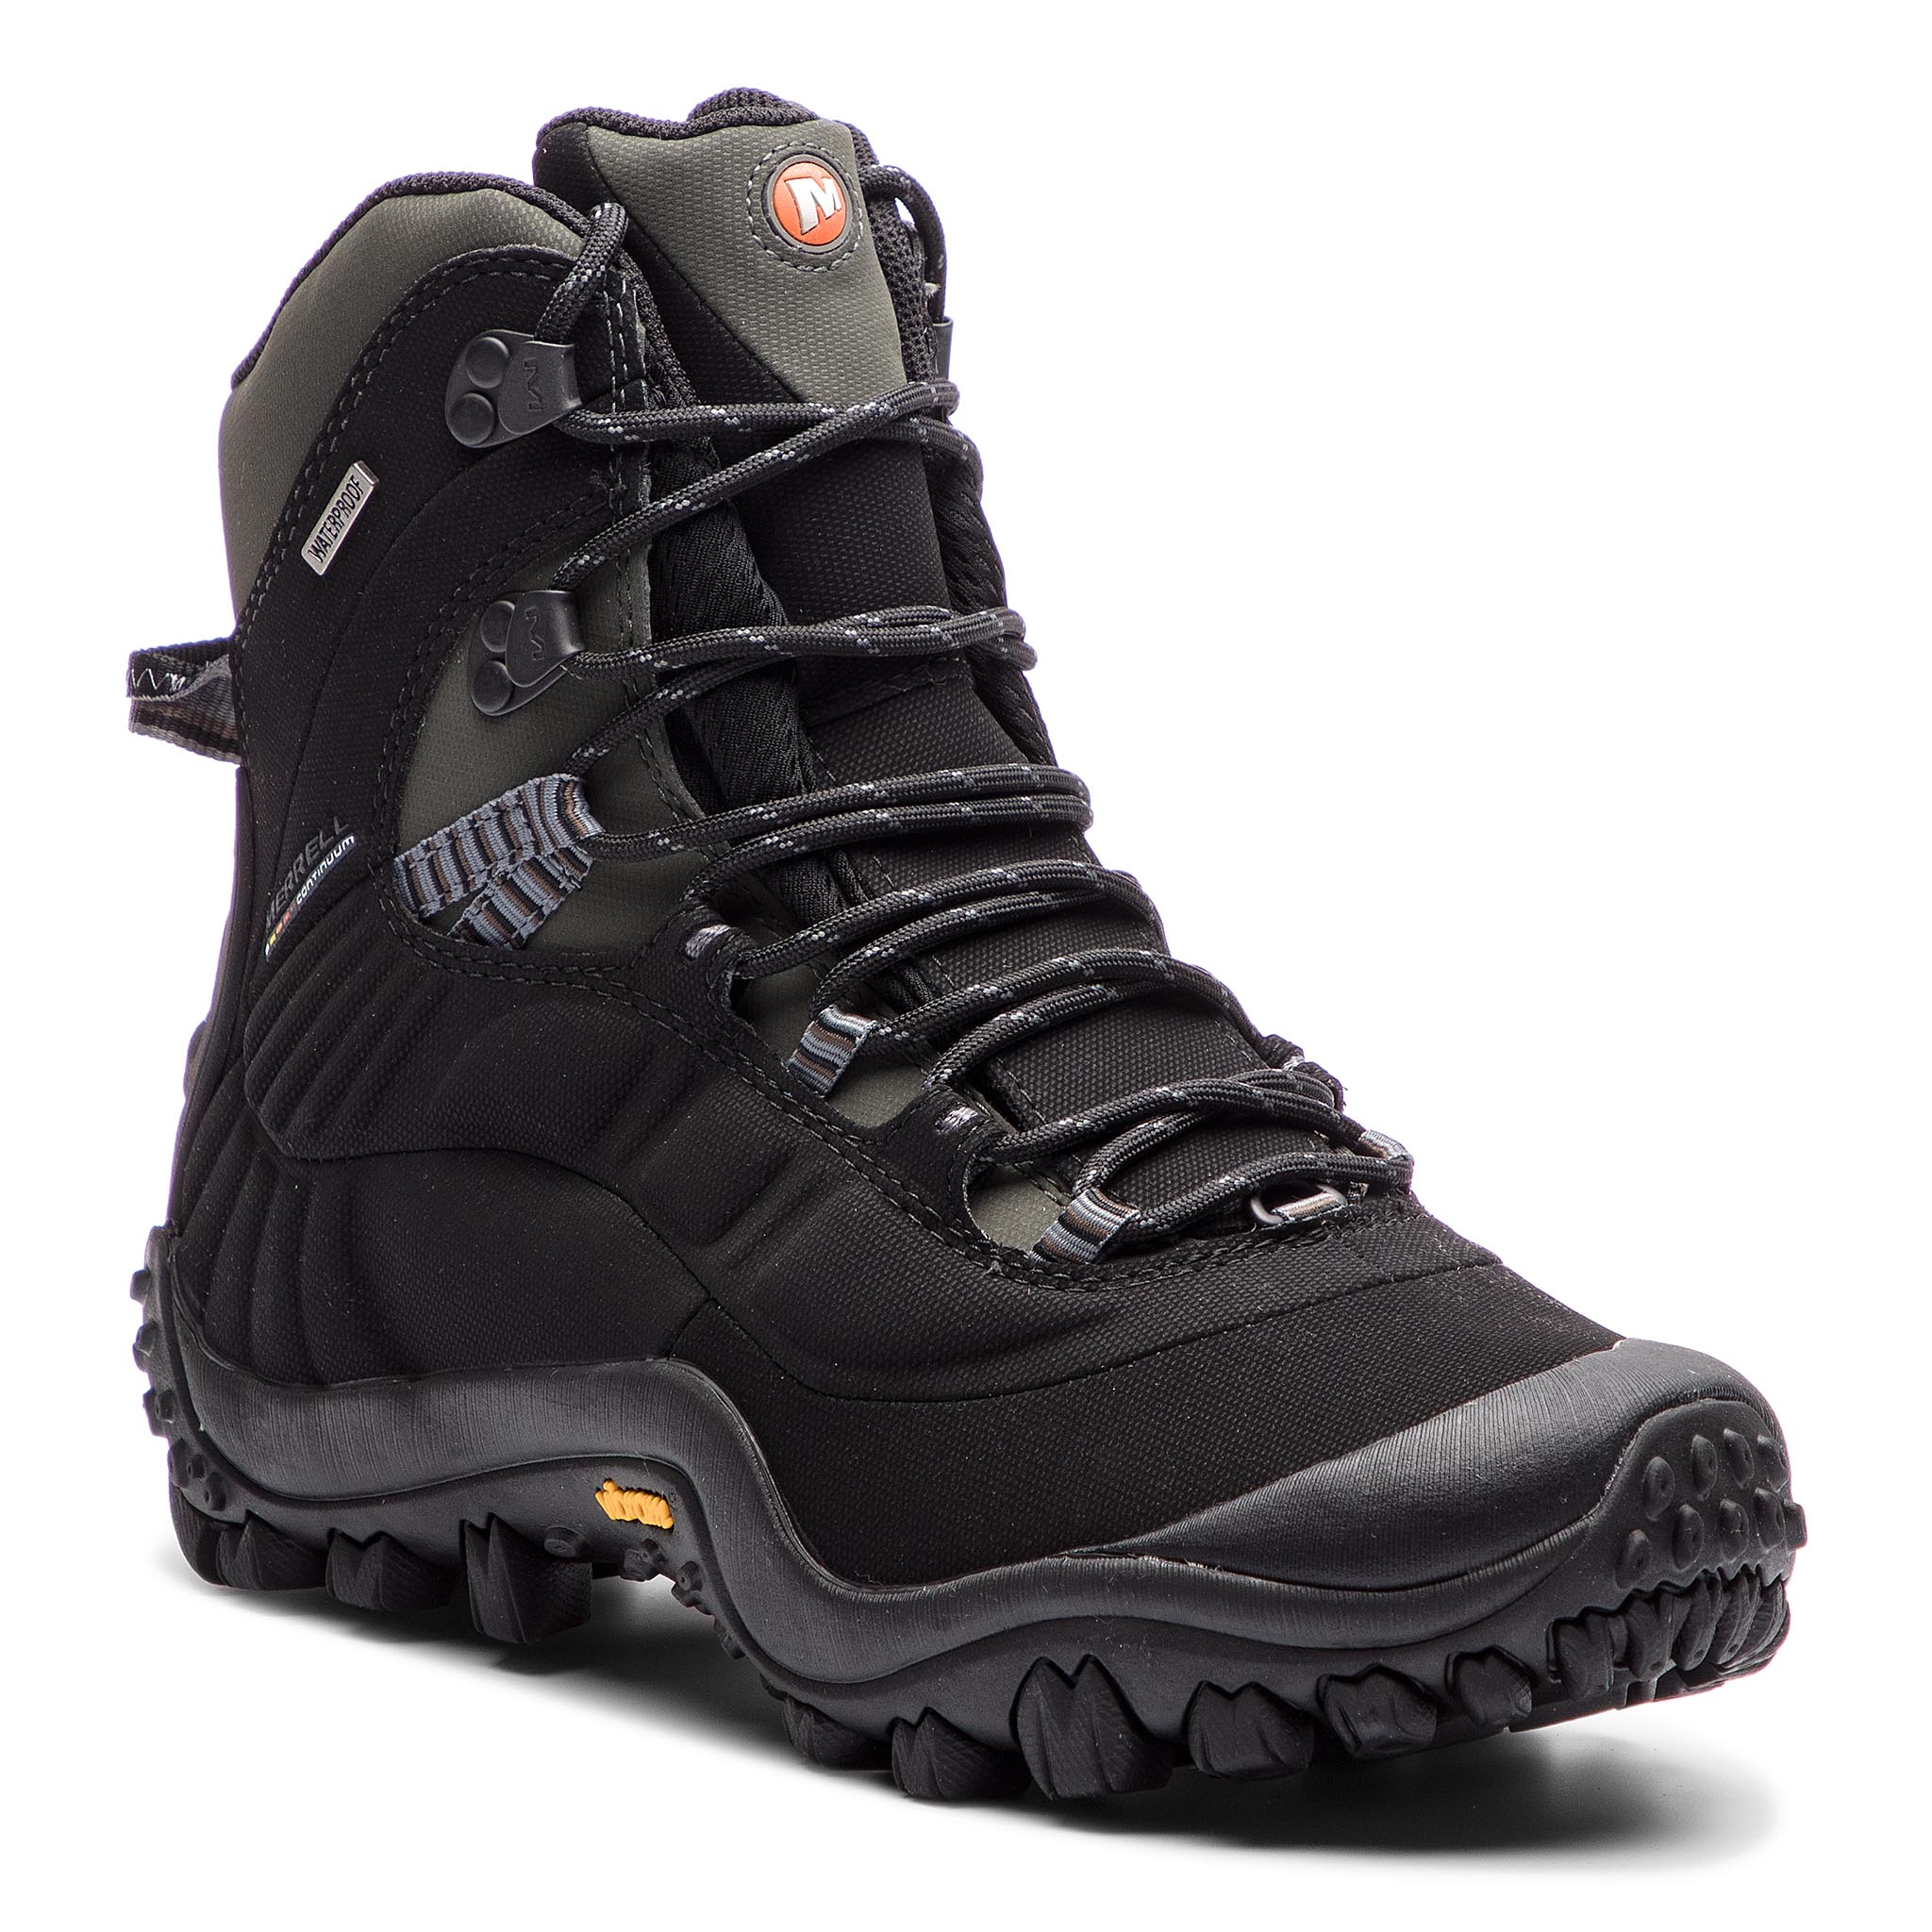 Trekkings MERRELL - Cham Thermo 8 Wp Syn J87005 Black